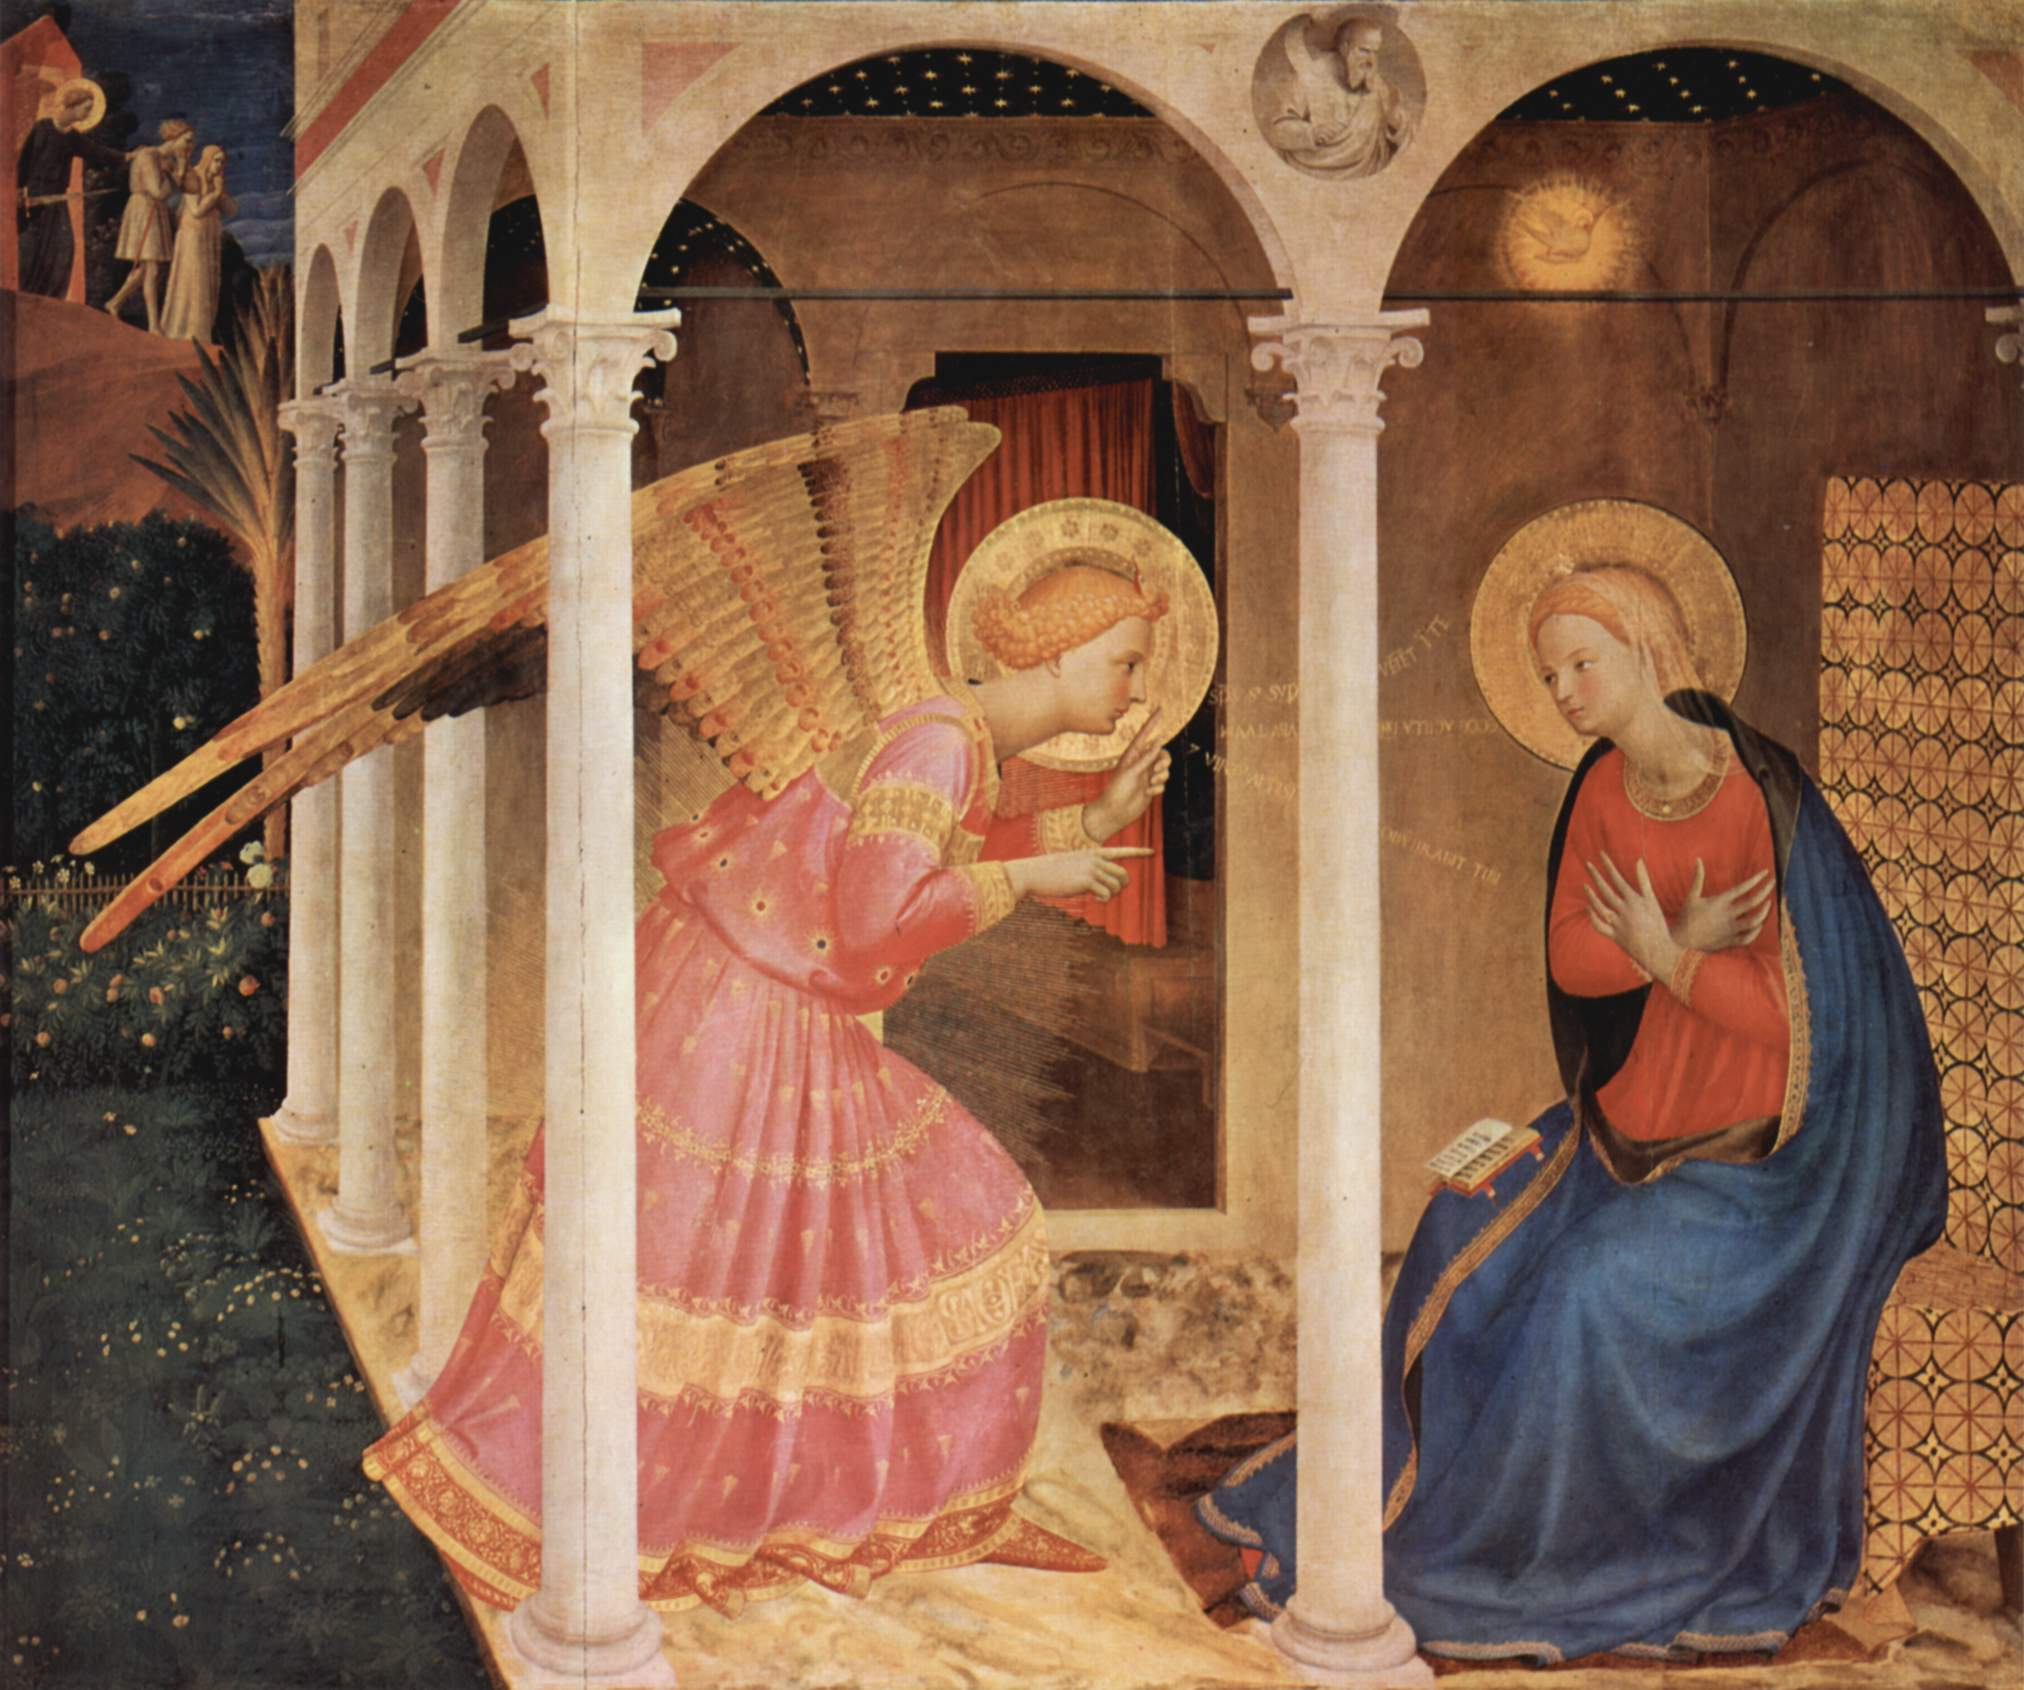 IMAGE SOURCE: http://upload.wikimedia.org/wikipedia/commons/9/96/Fra_Angelico_069.jpg